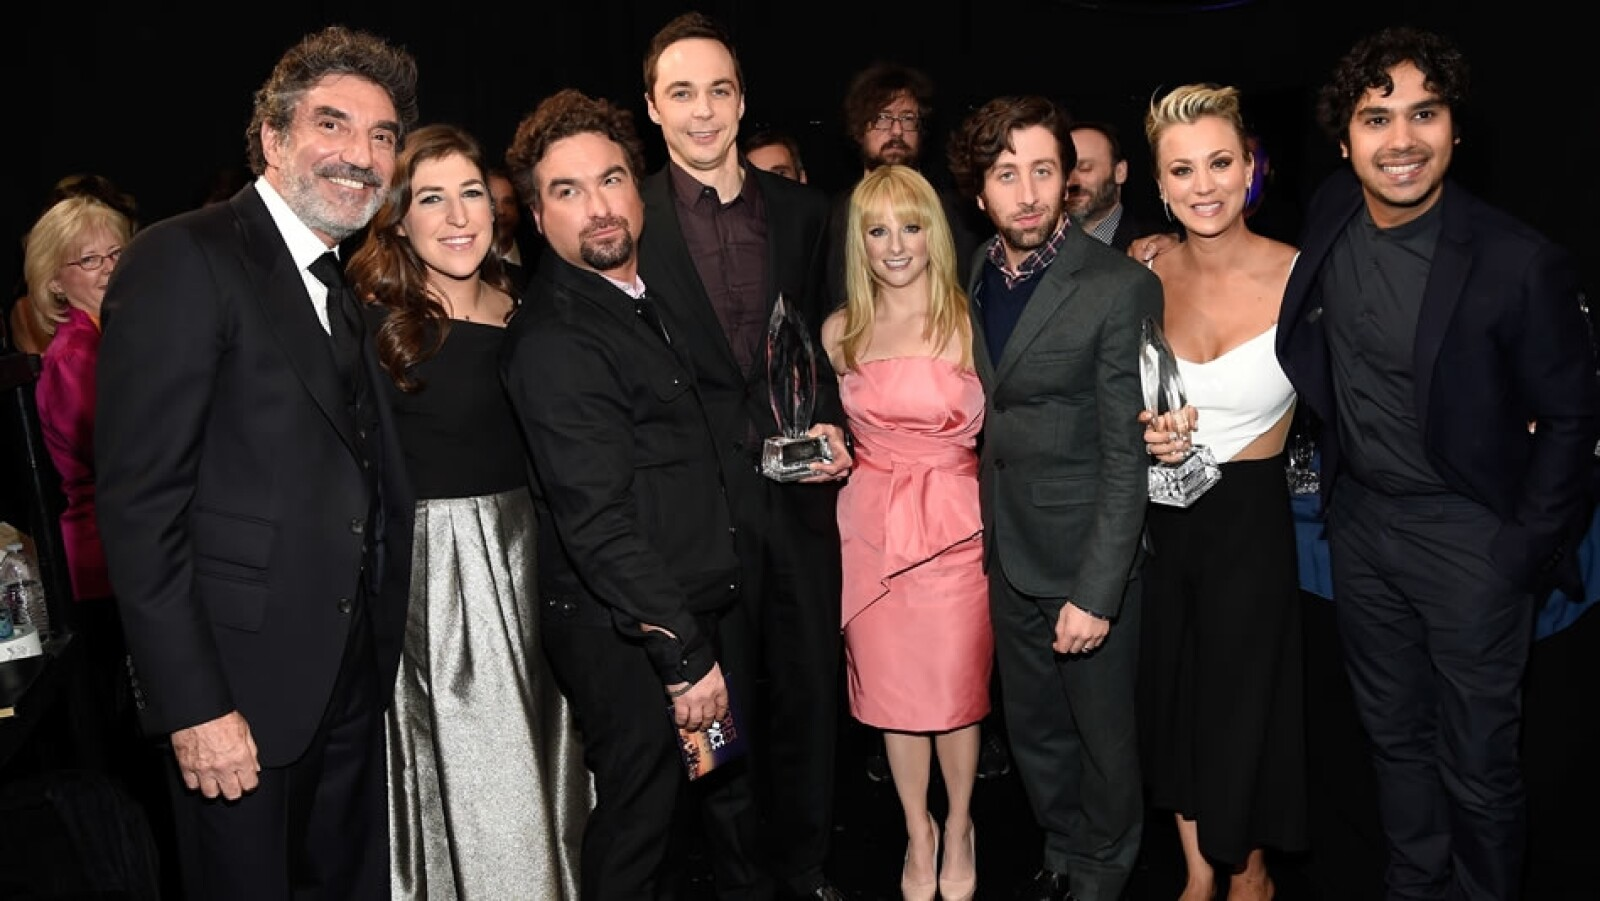 El elenco y productor de la serie favorita de televisión 'The Big Bang Theory'